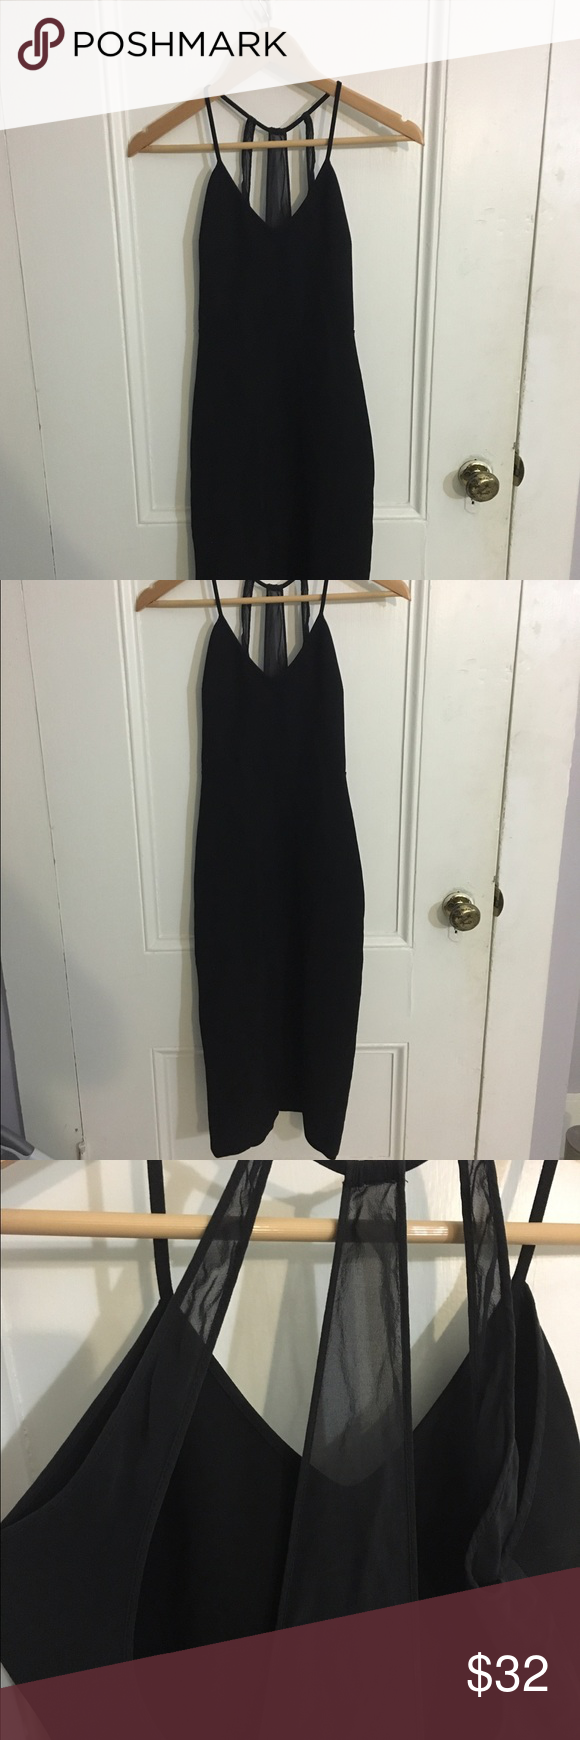 Never worn zara black dress with mesh detail zara black dress